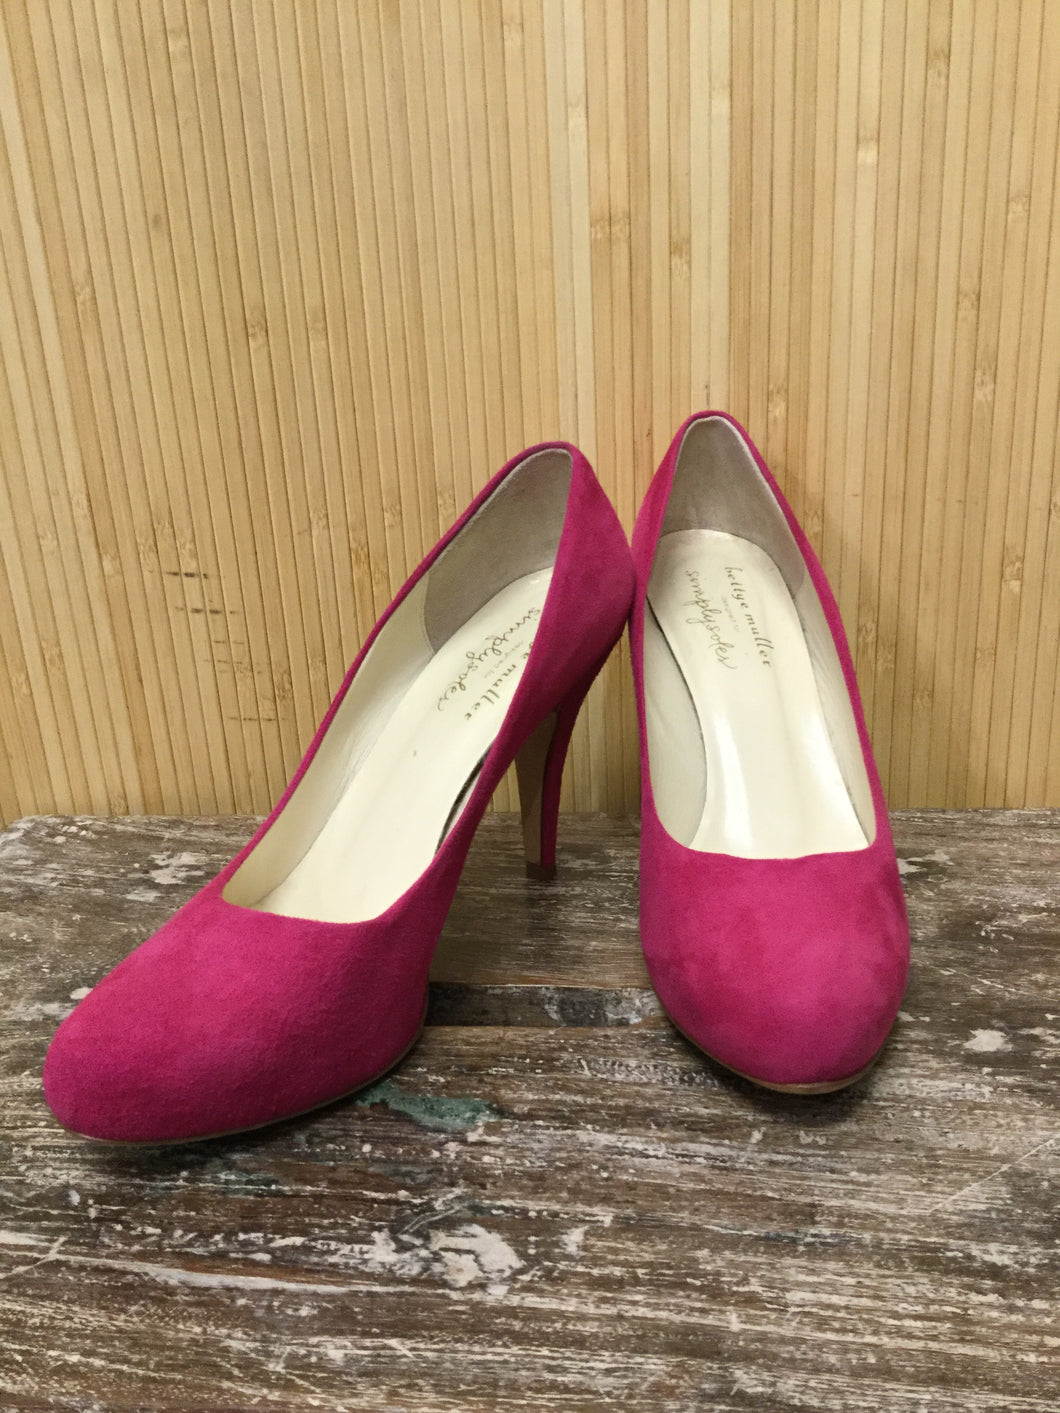 Bettye Muller Suede Pumps (8)